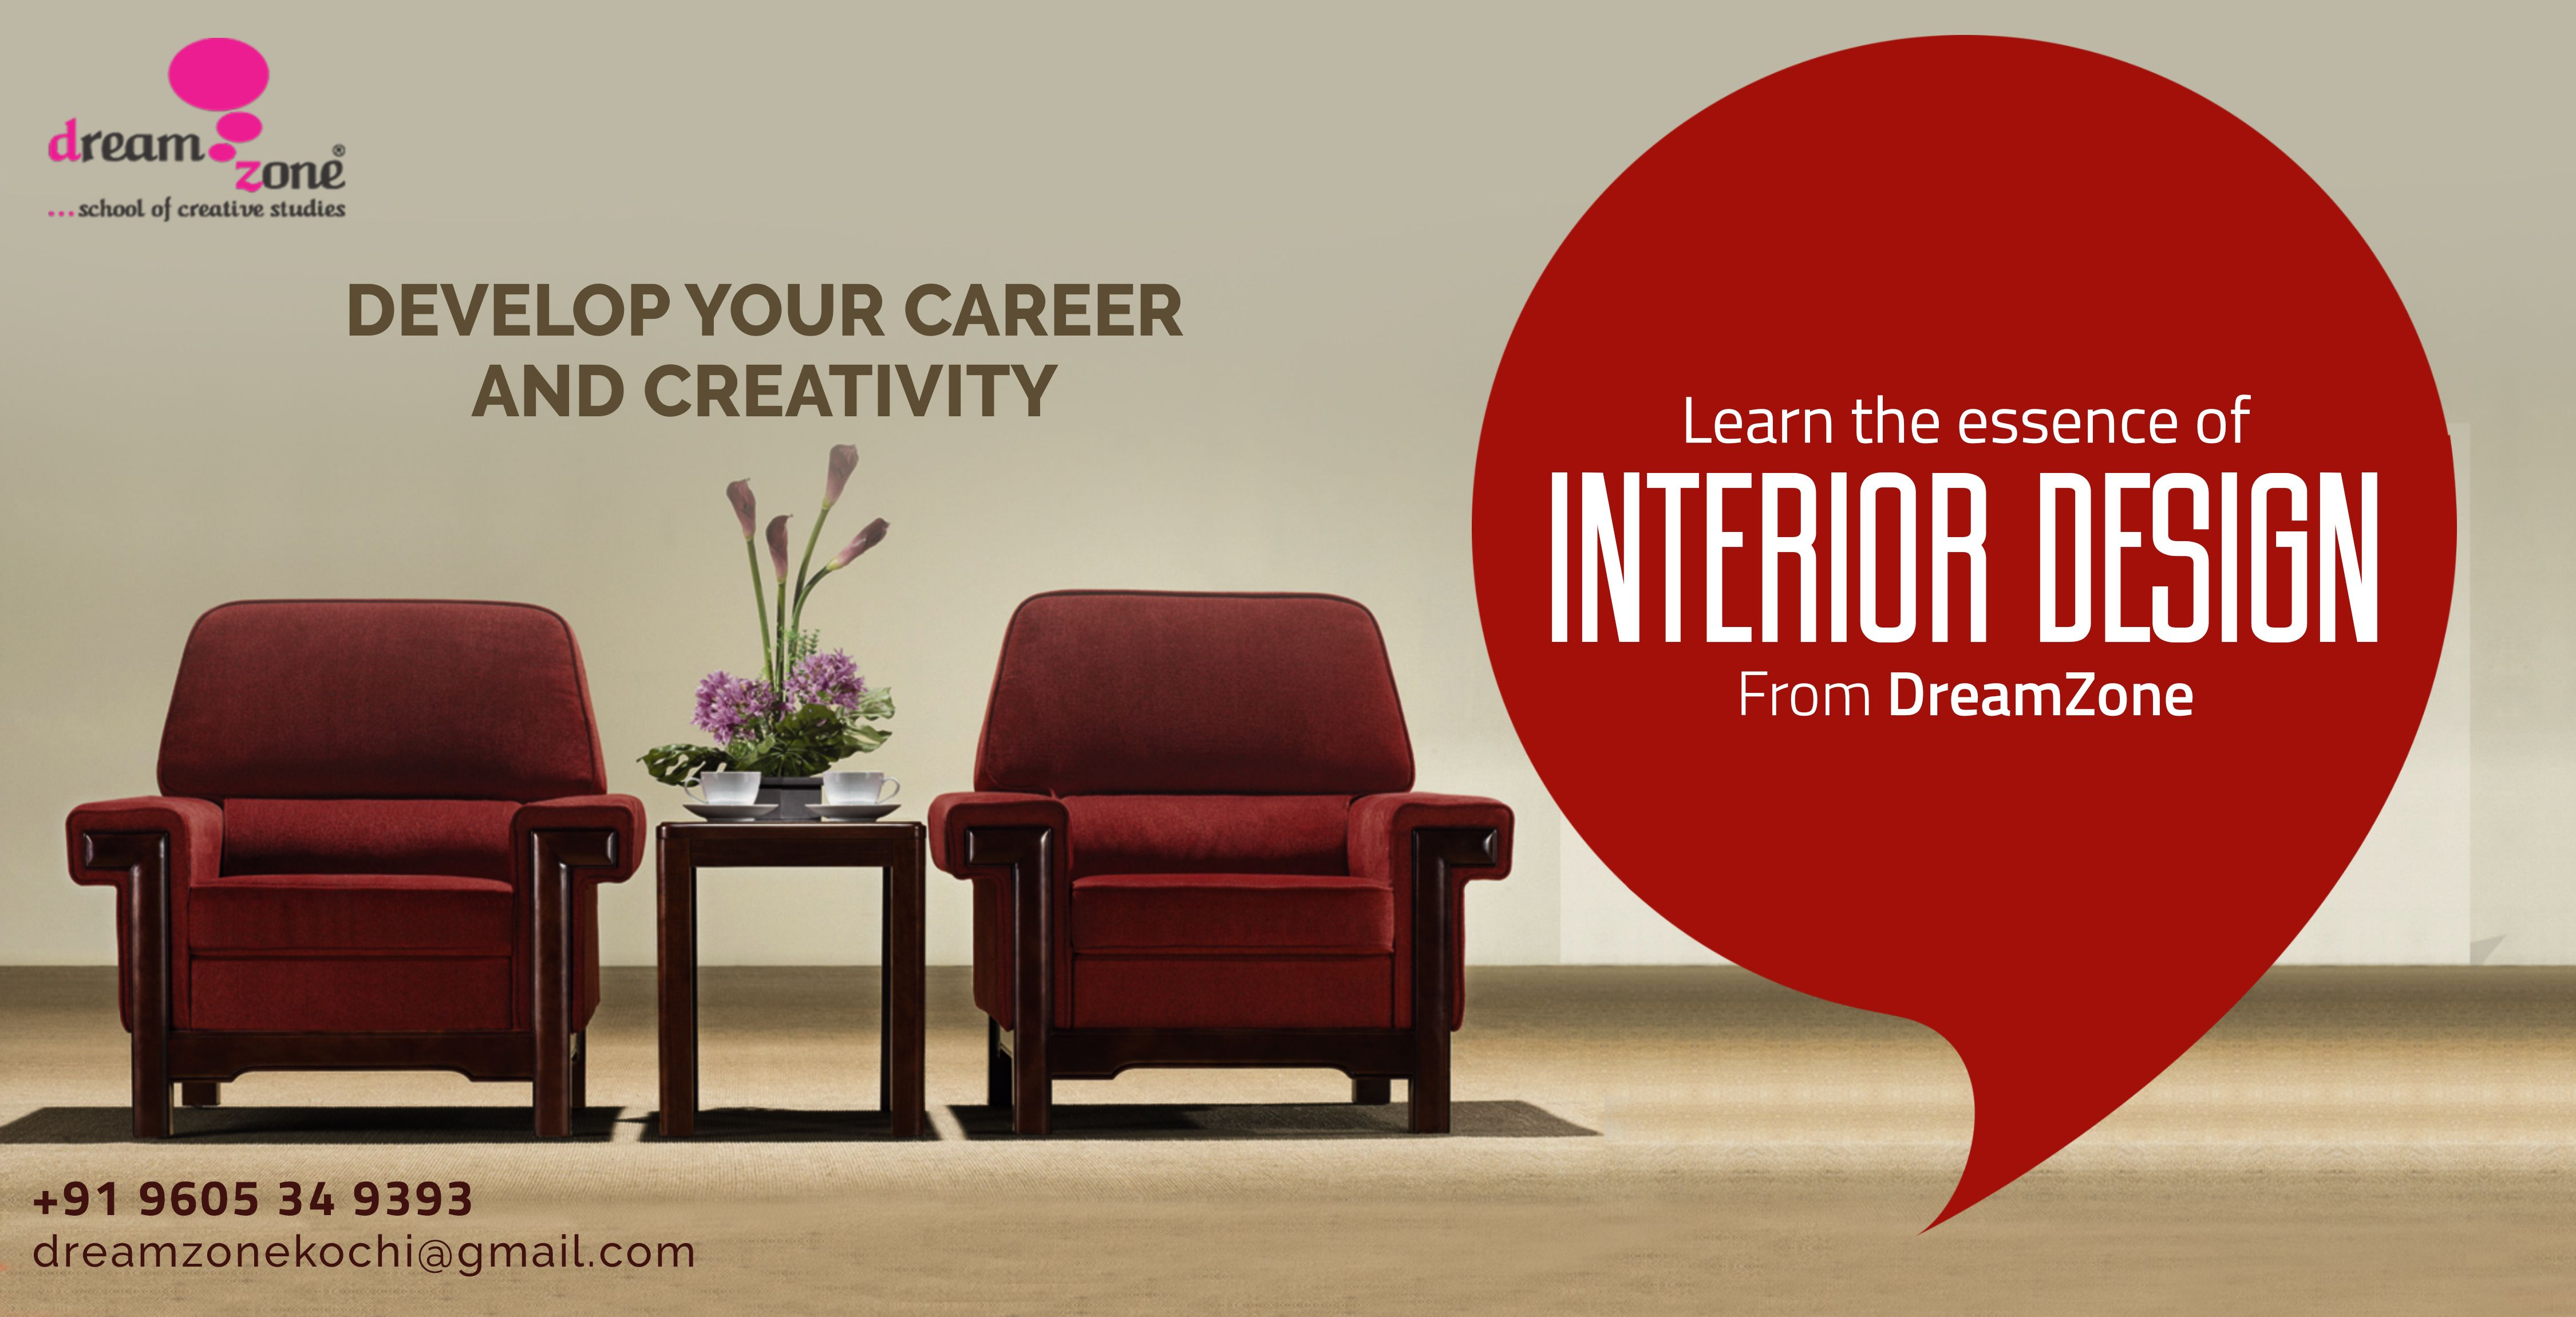 Design A Better Future In Interior Designing With Dreamzone Here